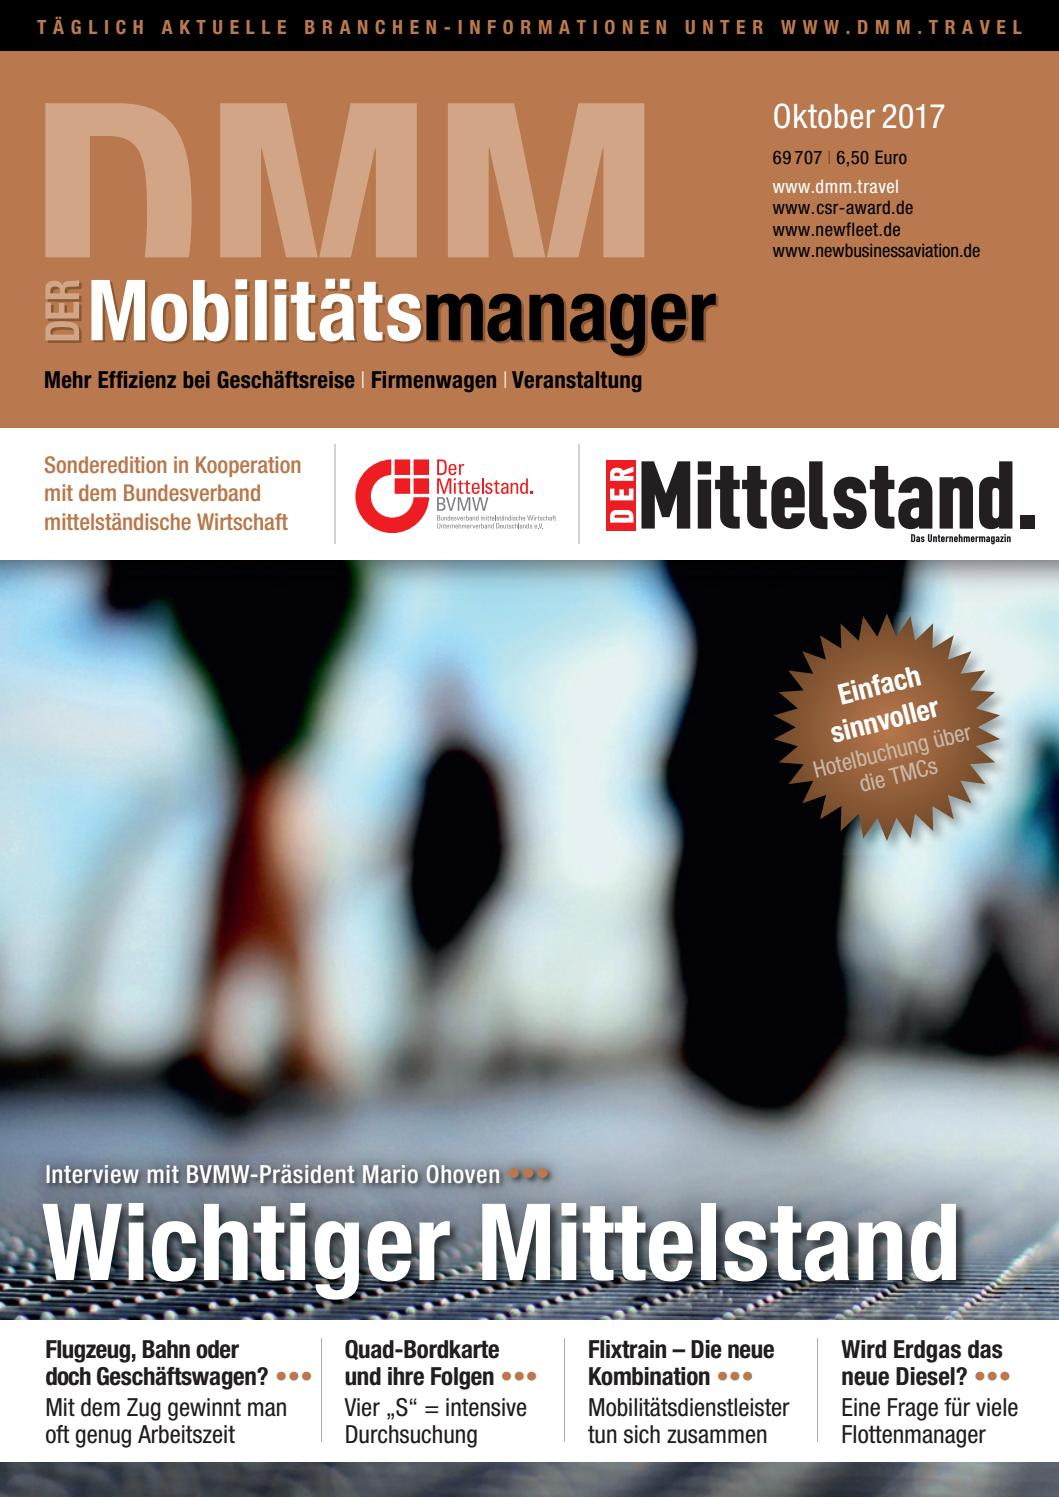 DMM – Der Mobilitaetsmanager 1710 by DMM - issuu